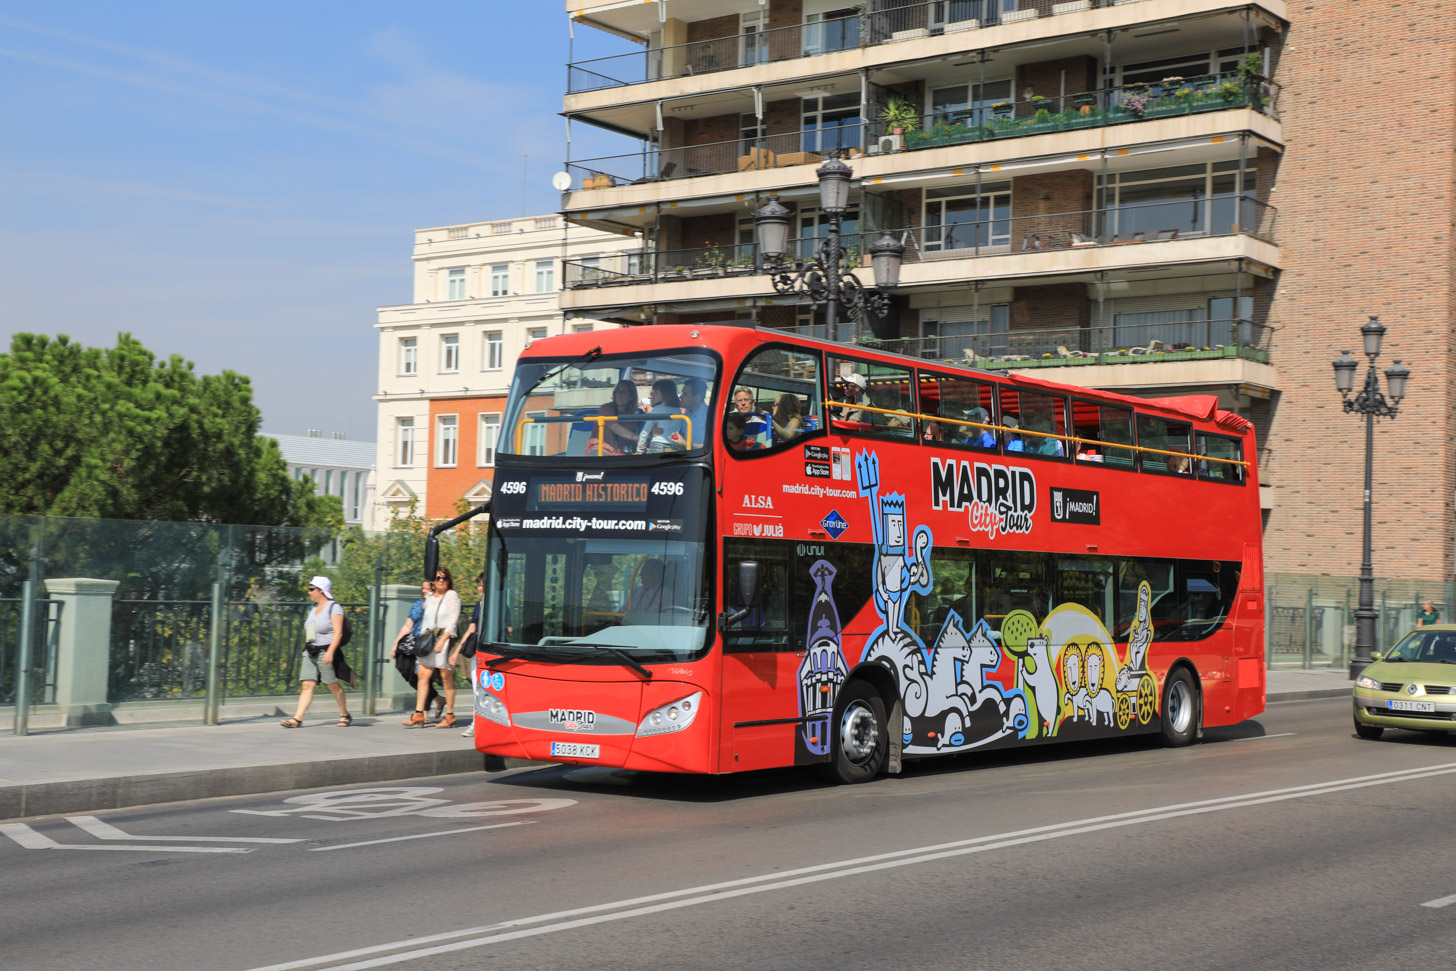 De hop-on-hop-off-bus die door Madrid rijdt.